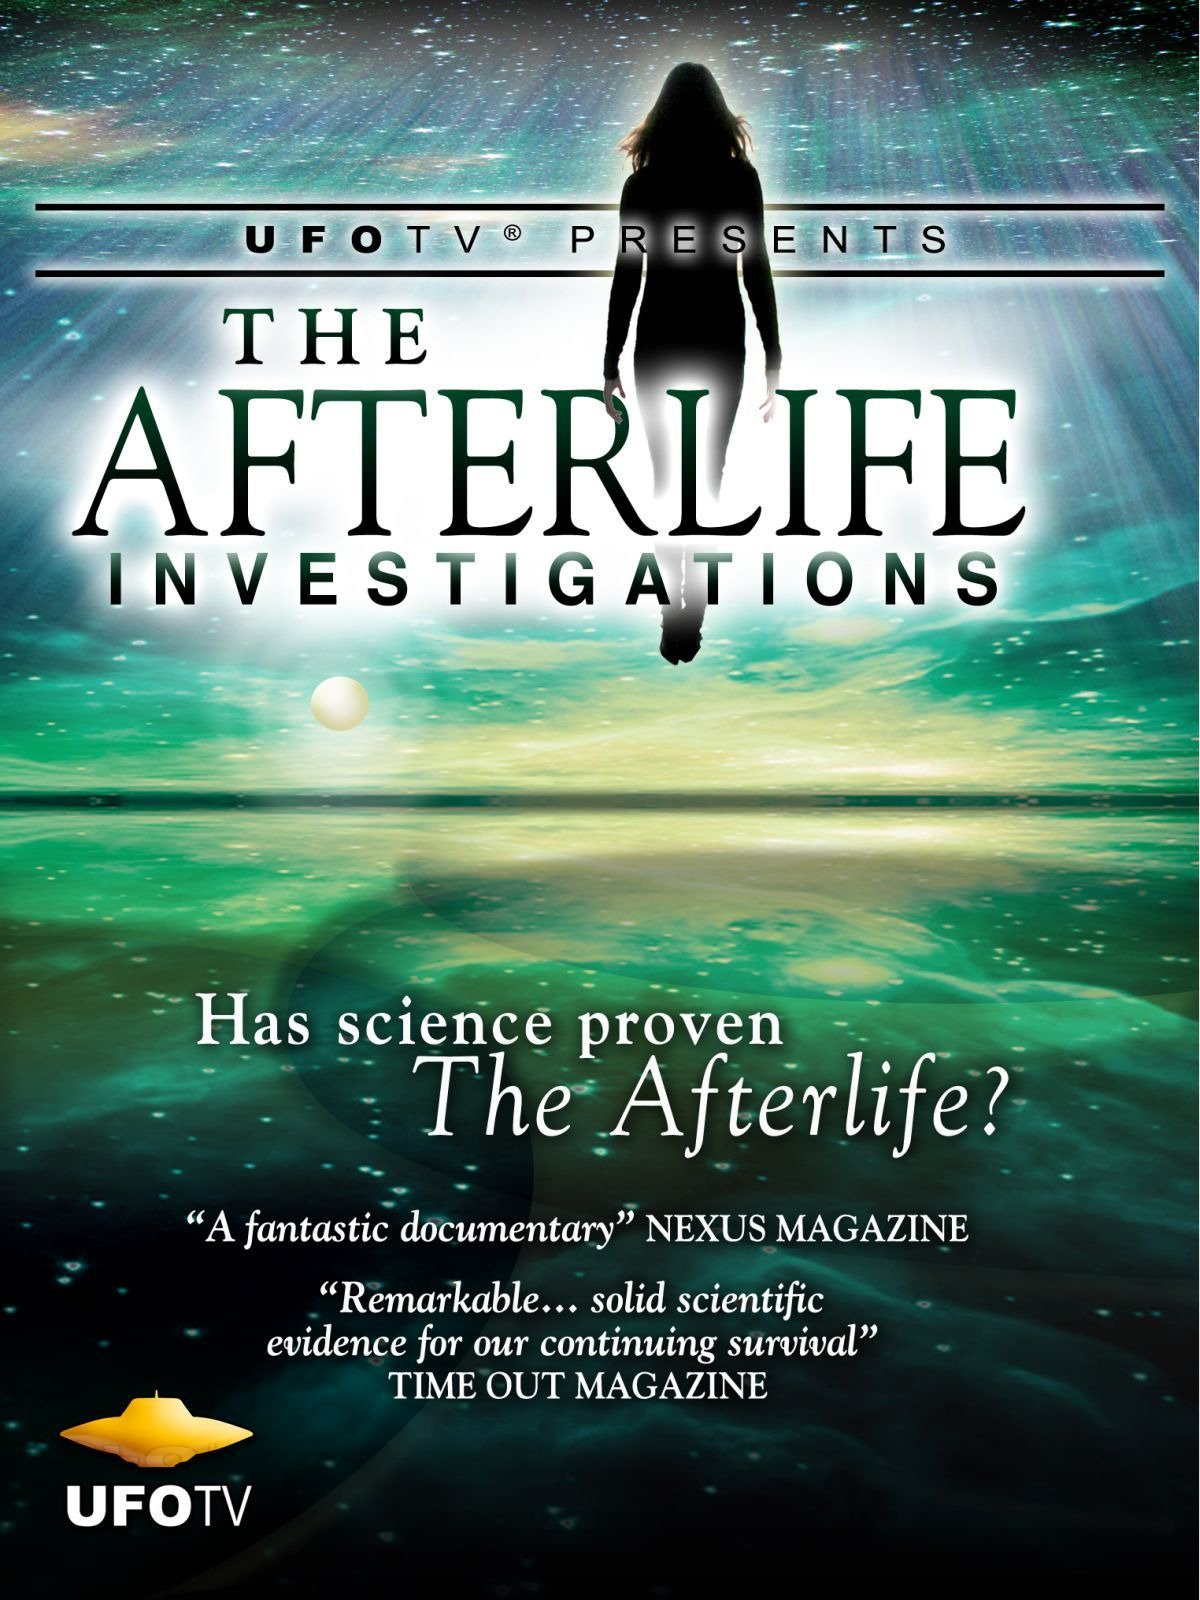 UFOTV Presents: The Afterlife Investigations on Amazon Prime Instant Video UK